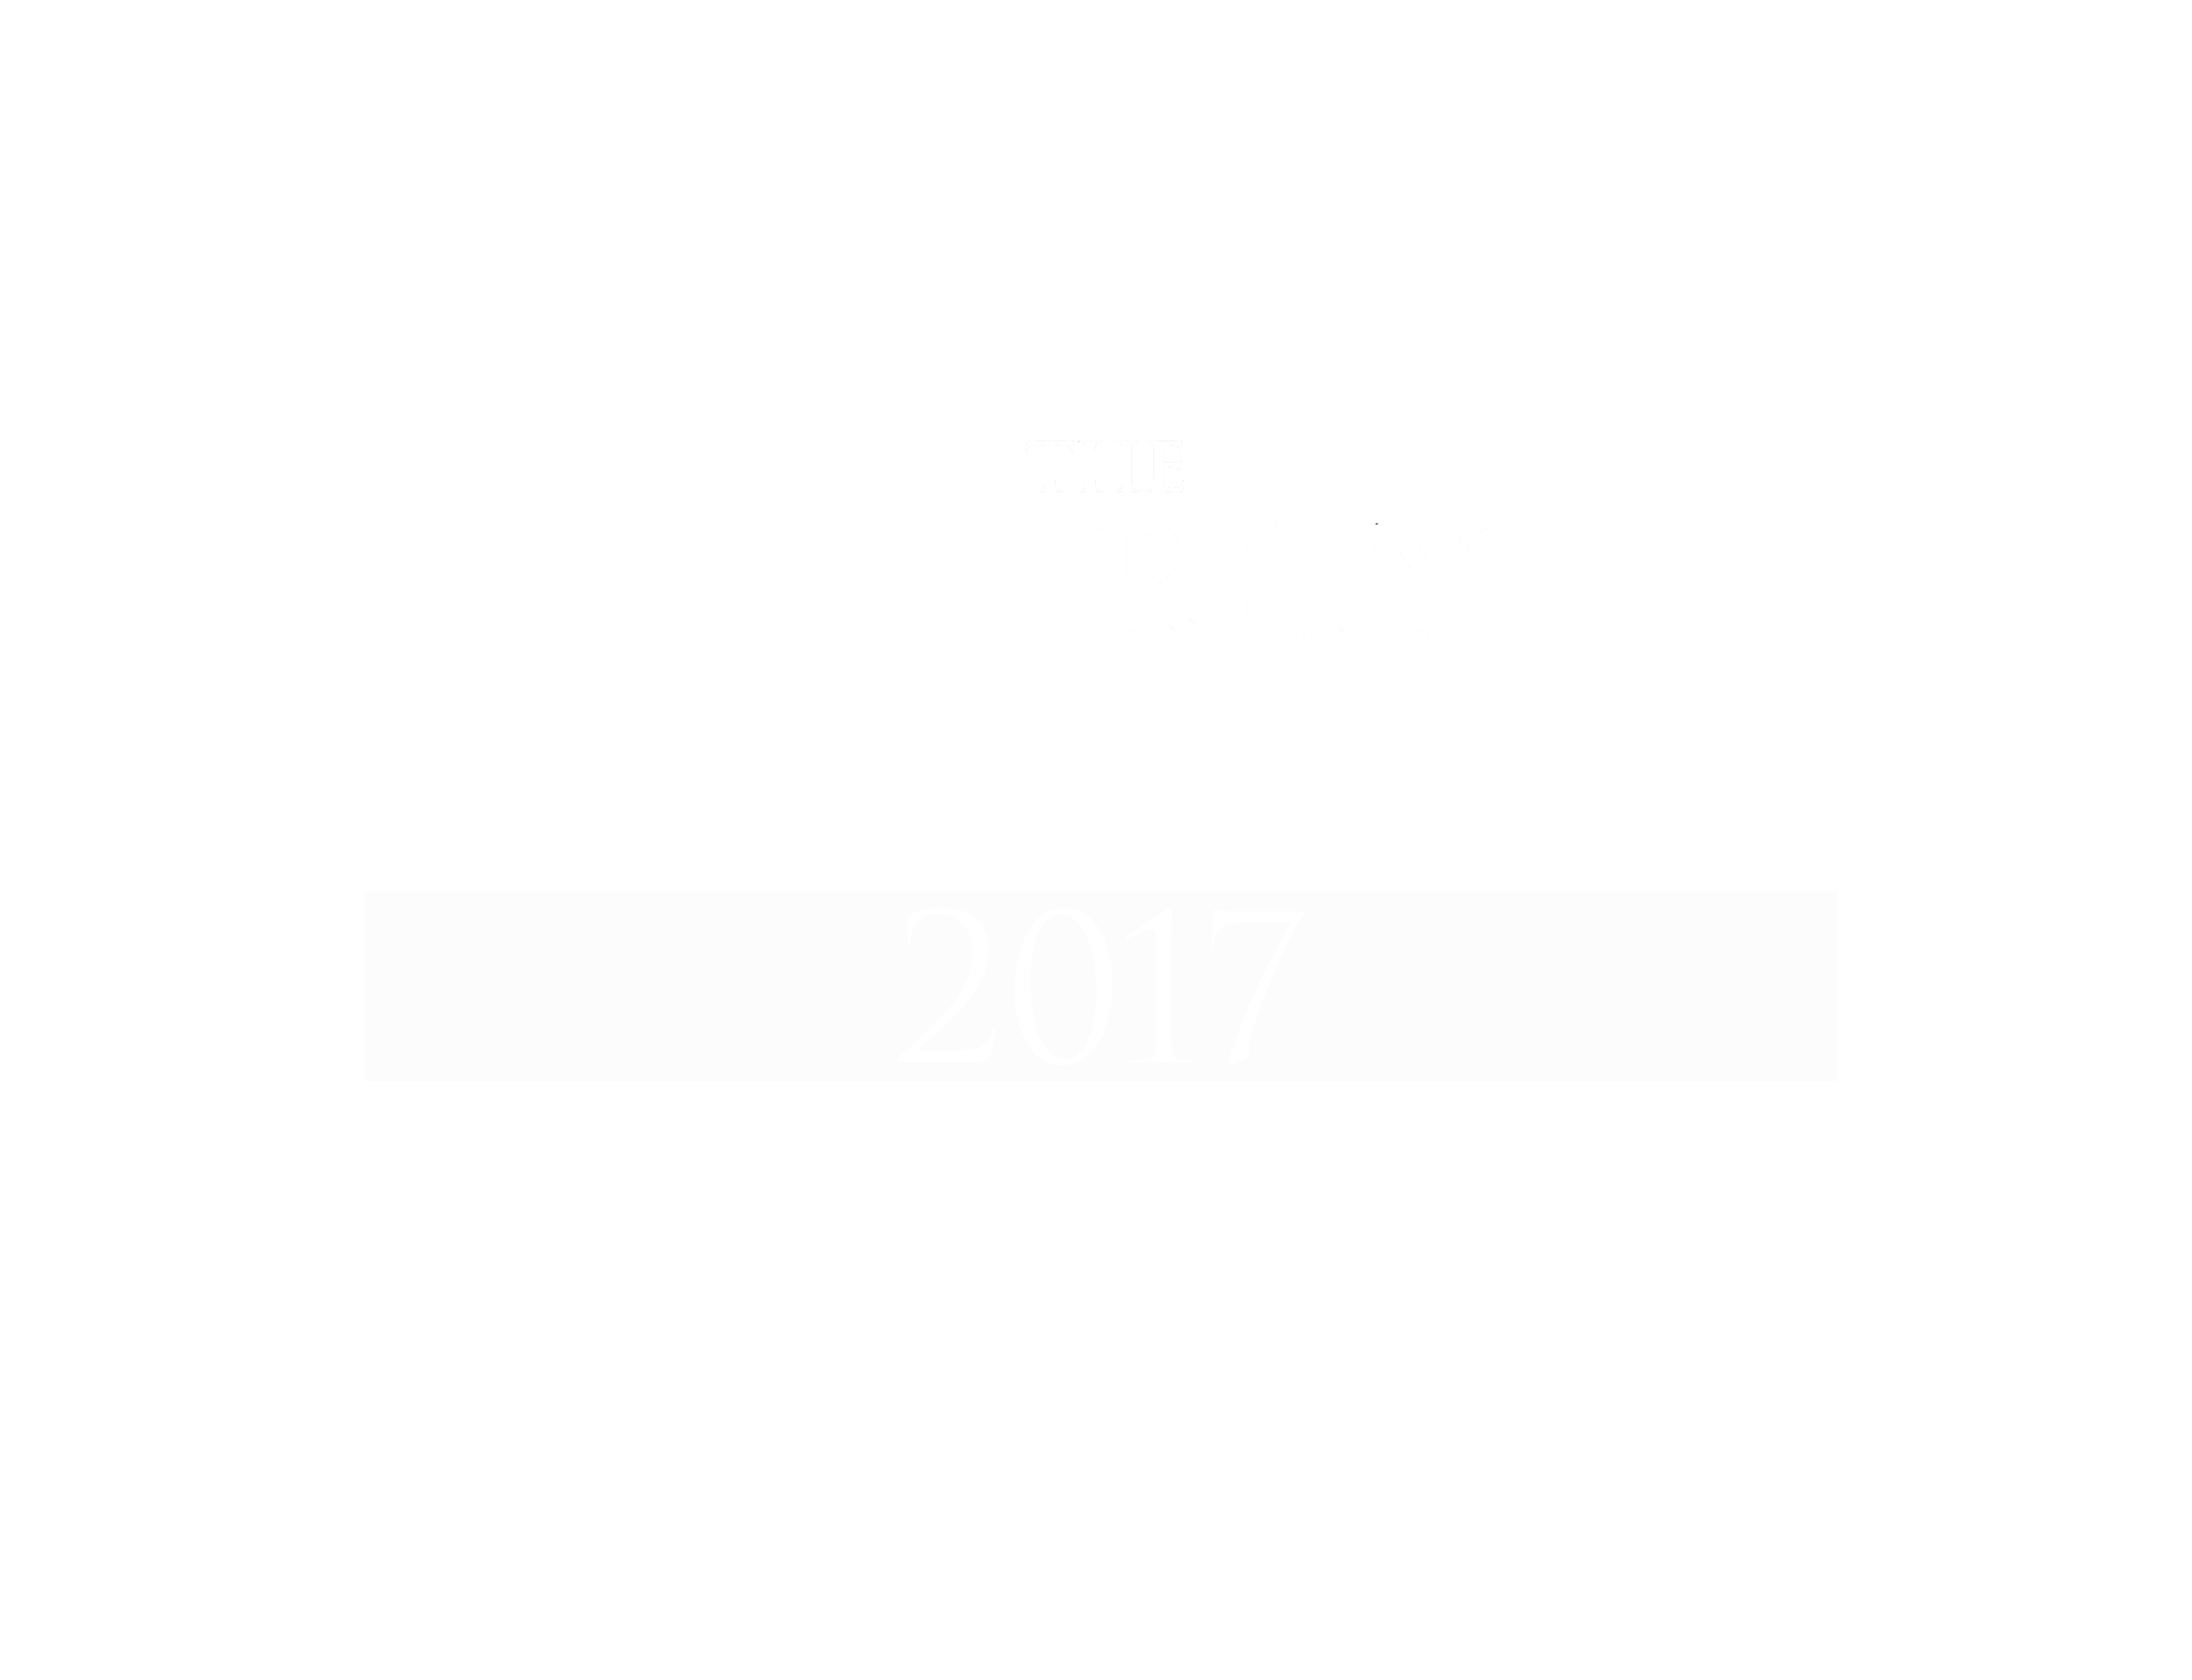 Logo for charity awards international aid and development runner up beyond water and award winning water charity and social enterprise